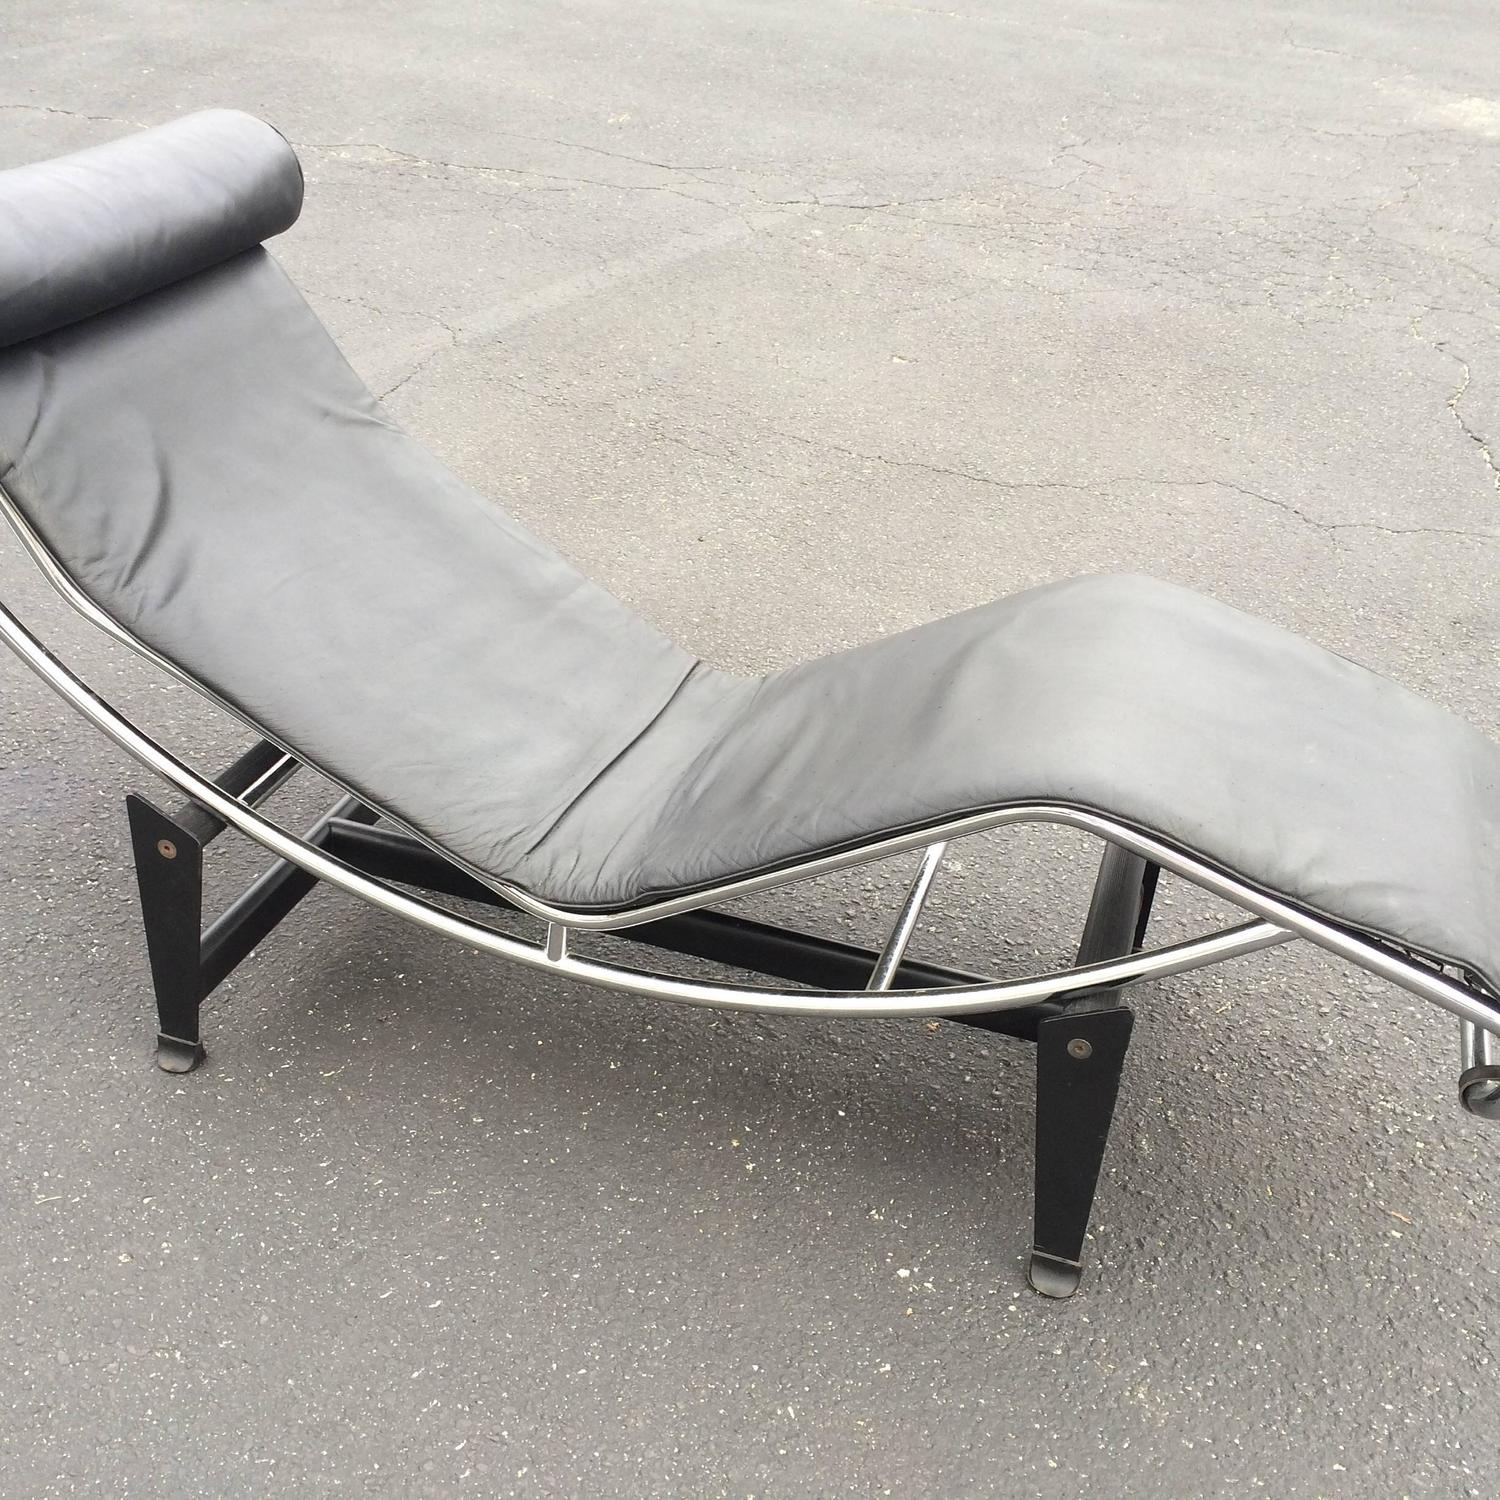 Le corbusier lc4 chaise longue in black leather at 1stdibs for Chaise longue le corbusier vache